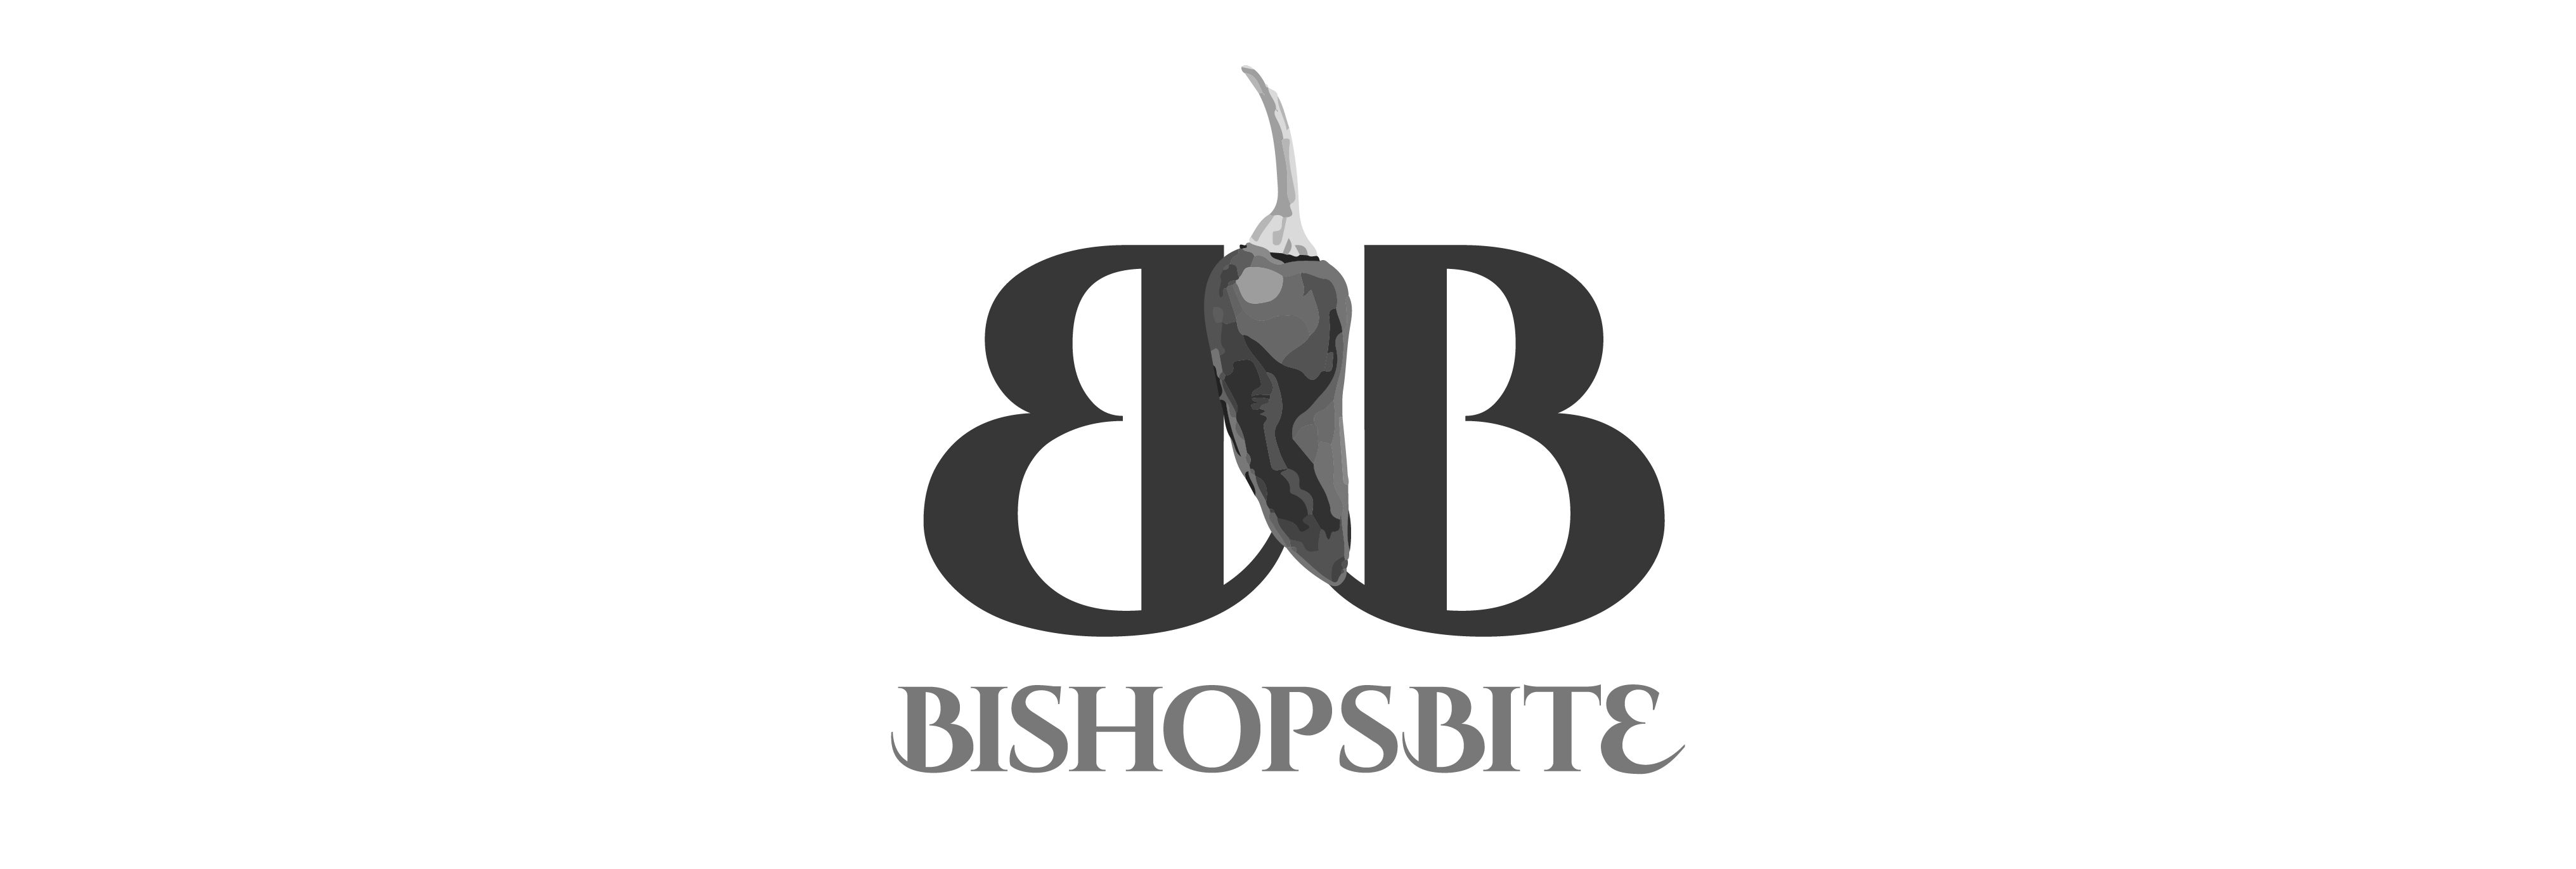 Bishops Bite | Odd Poppy Advertising Agency | Johannesburg | Clients